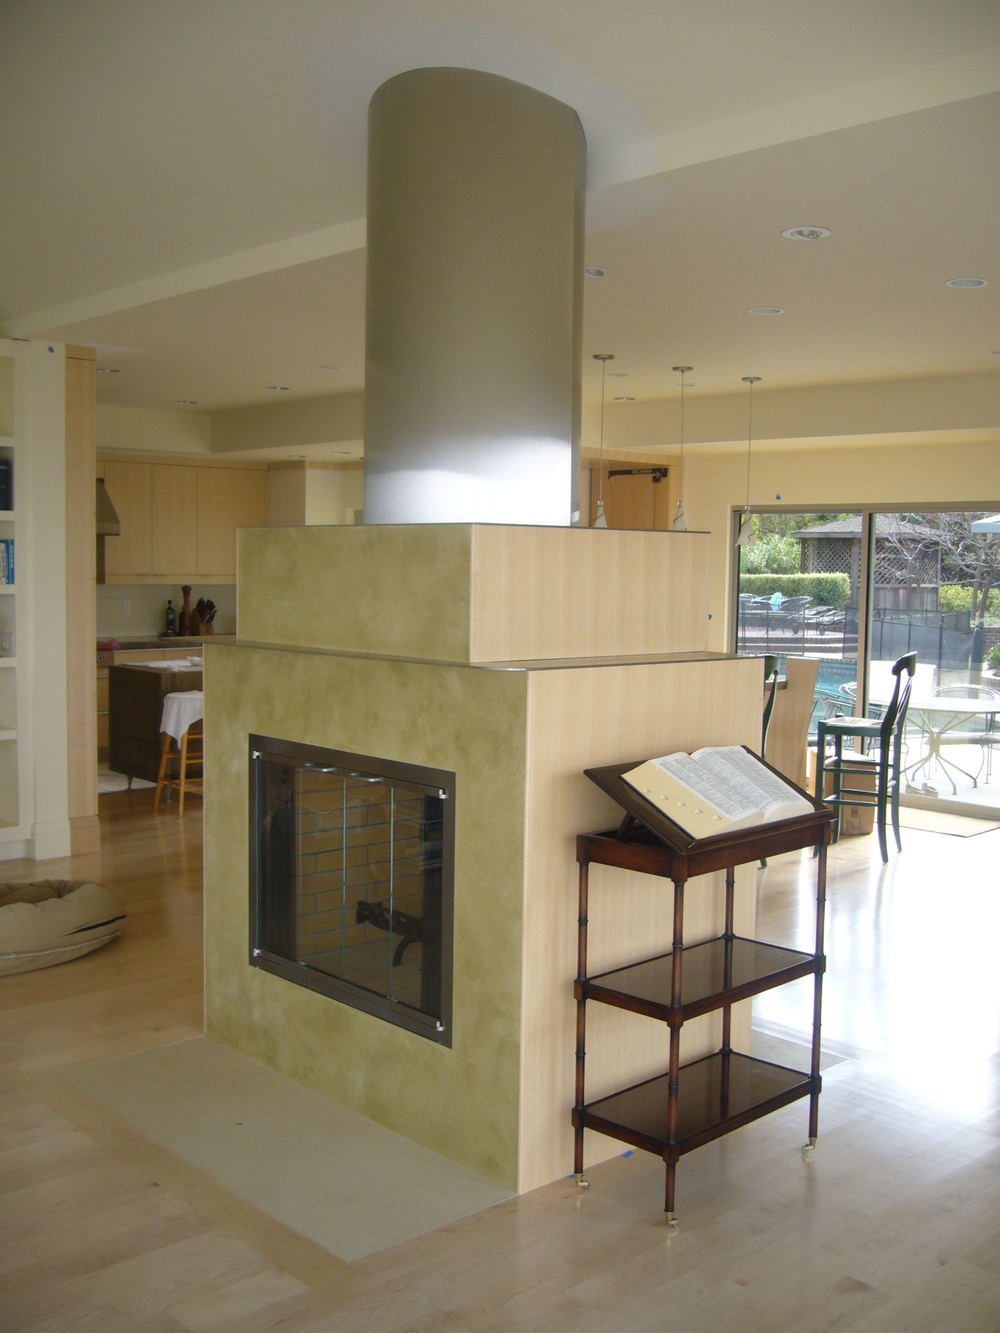 fireplace_photos-03.JPG